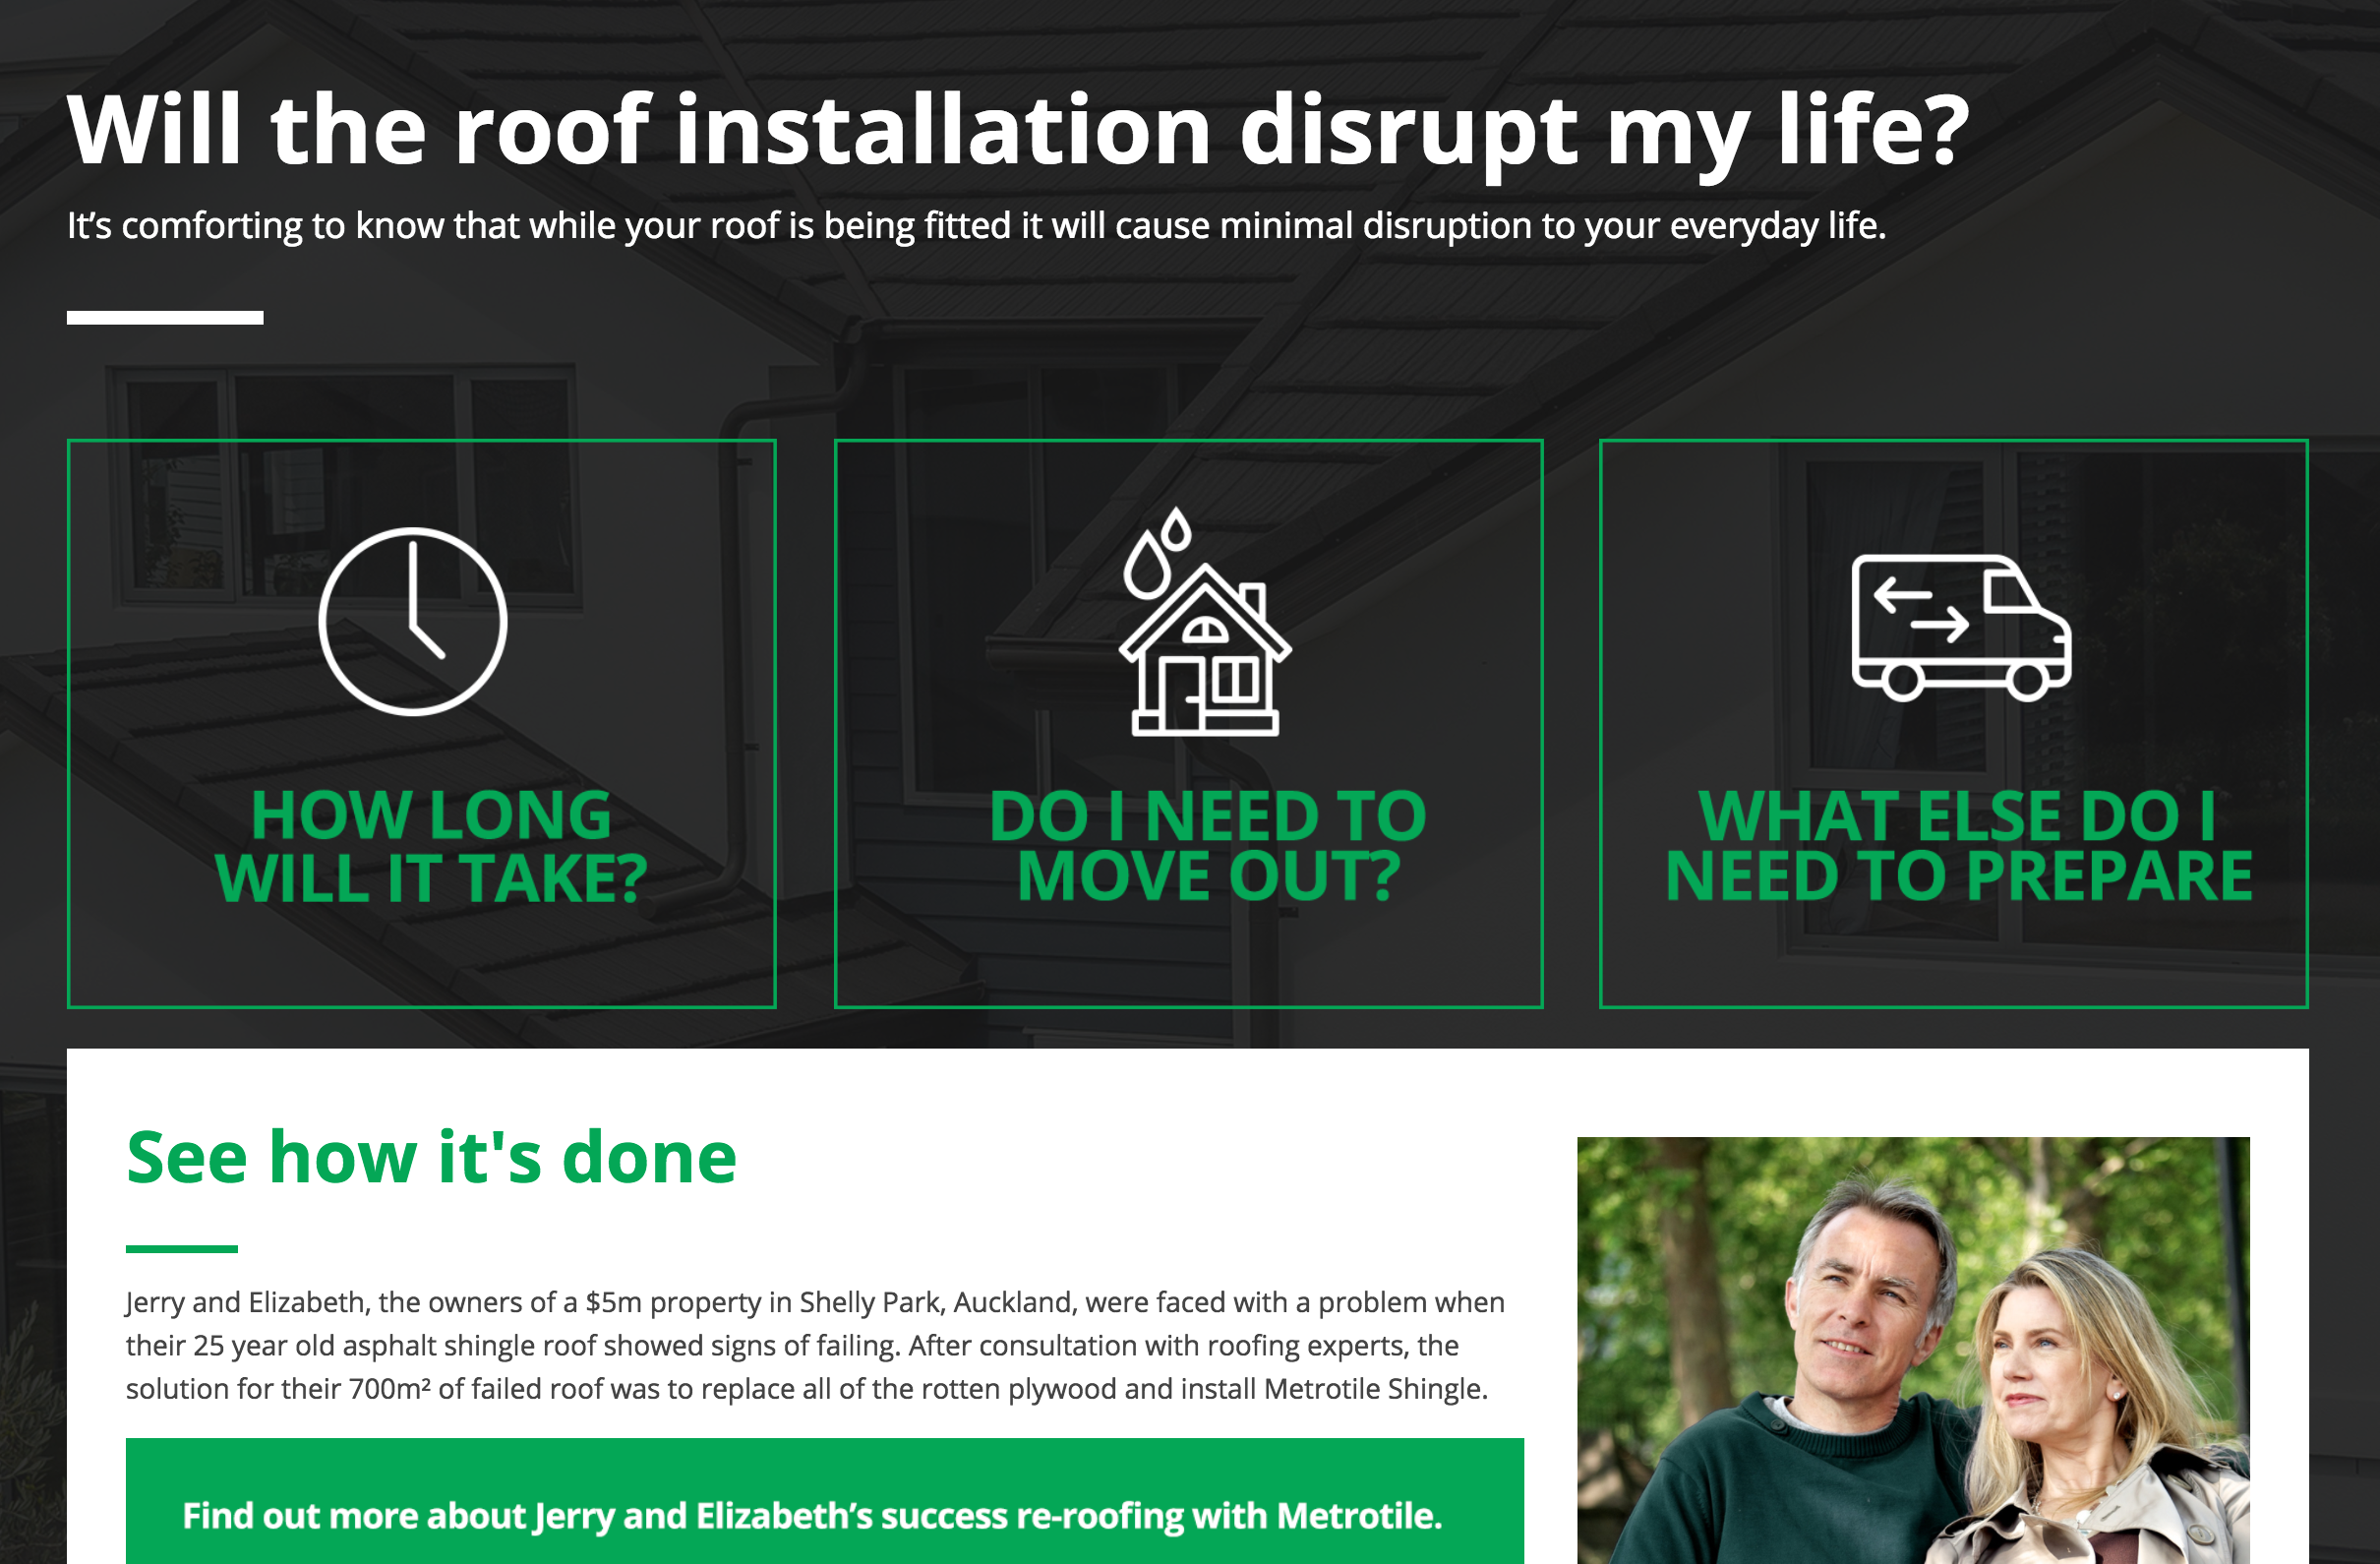 will-a-re-roof-disrupt-my-life.png